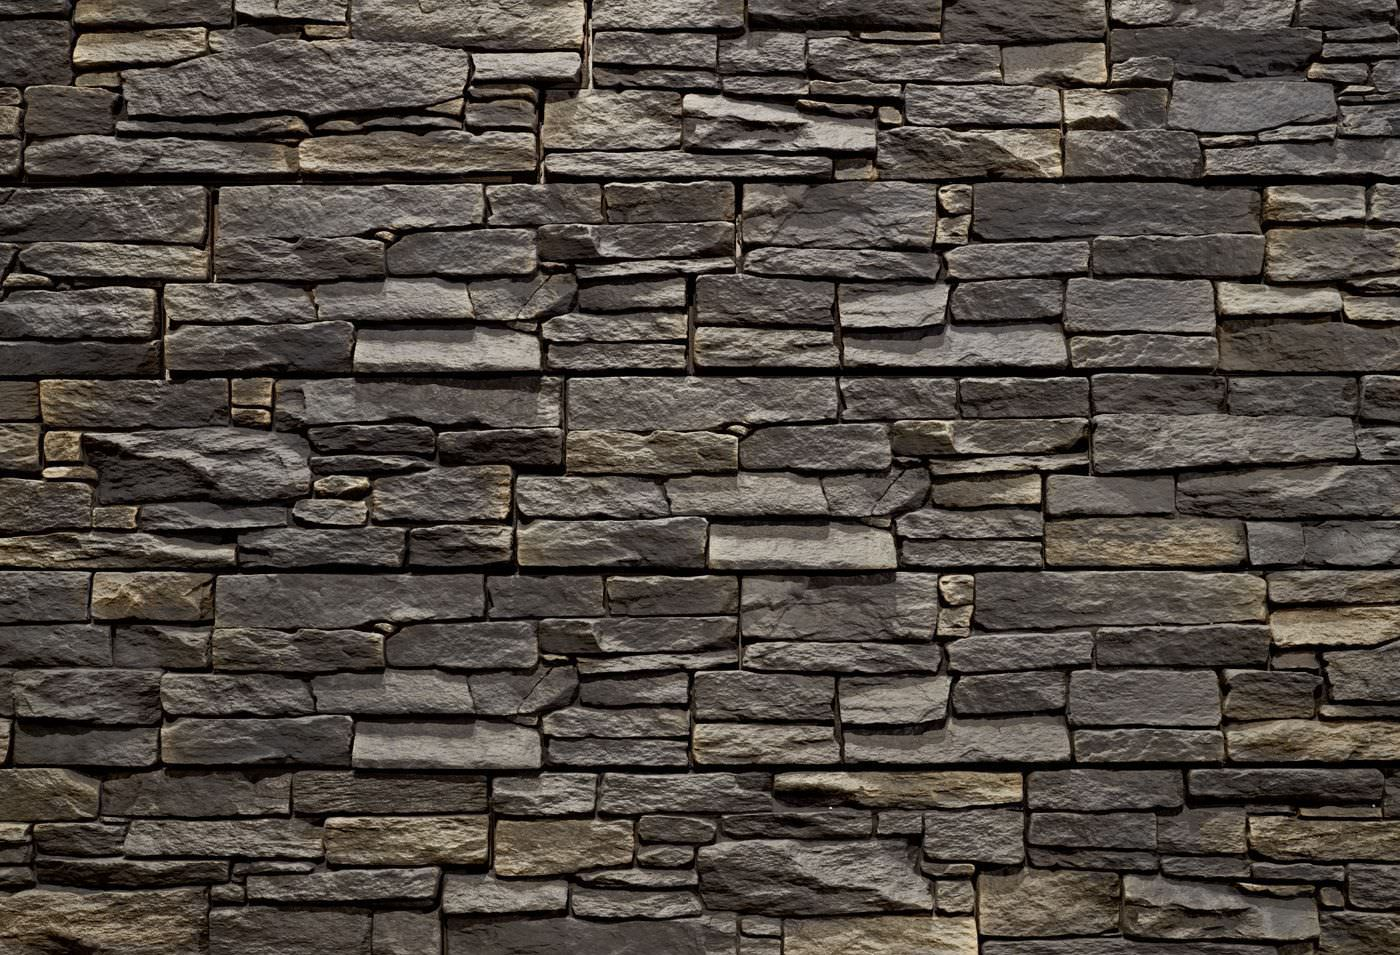 Marvelous Stone Tiles For Outdoor Walls Designs